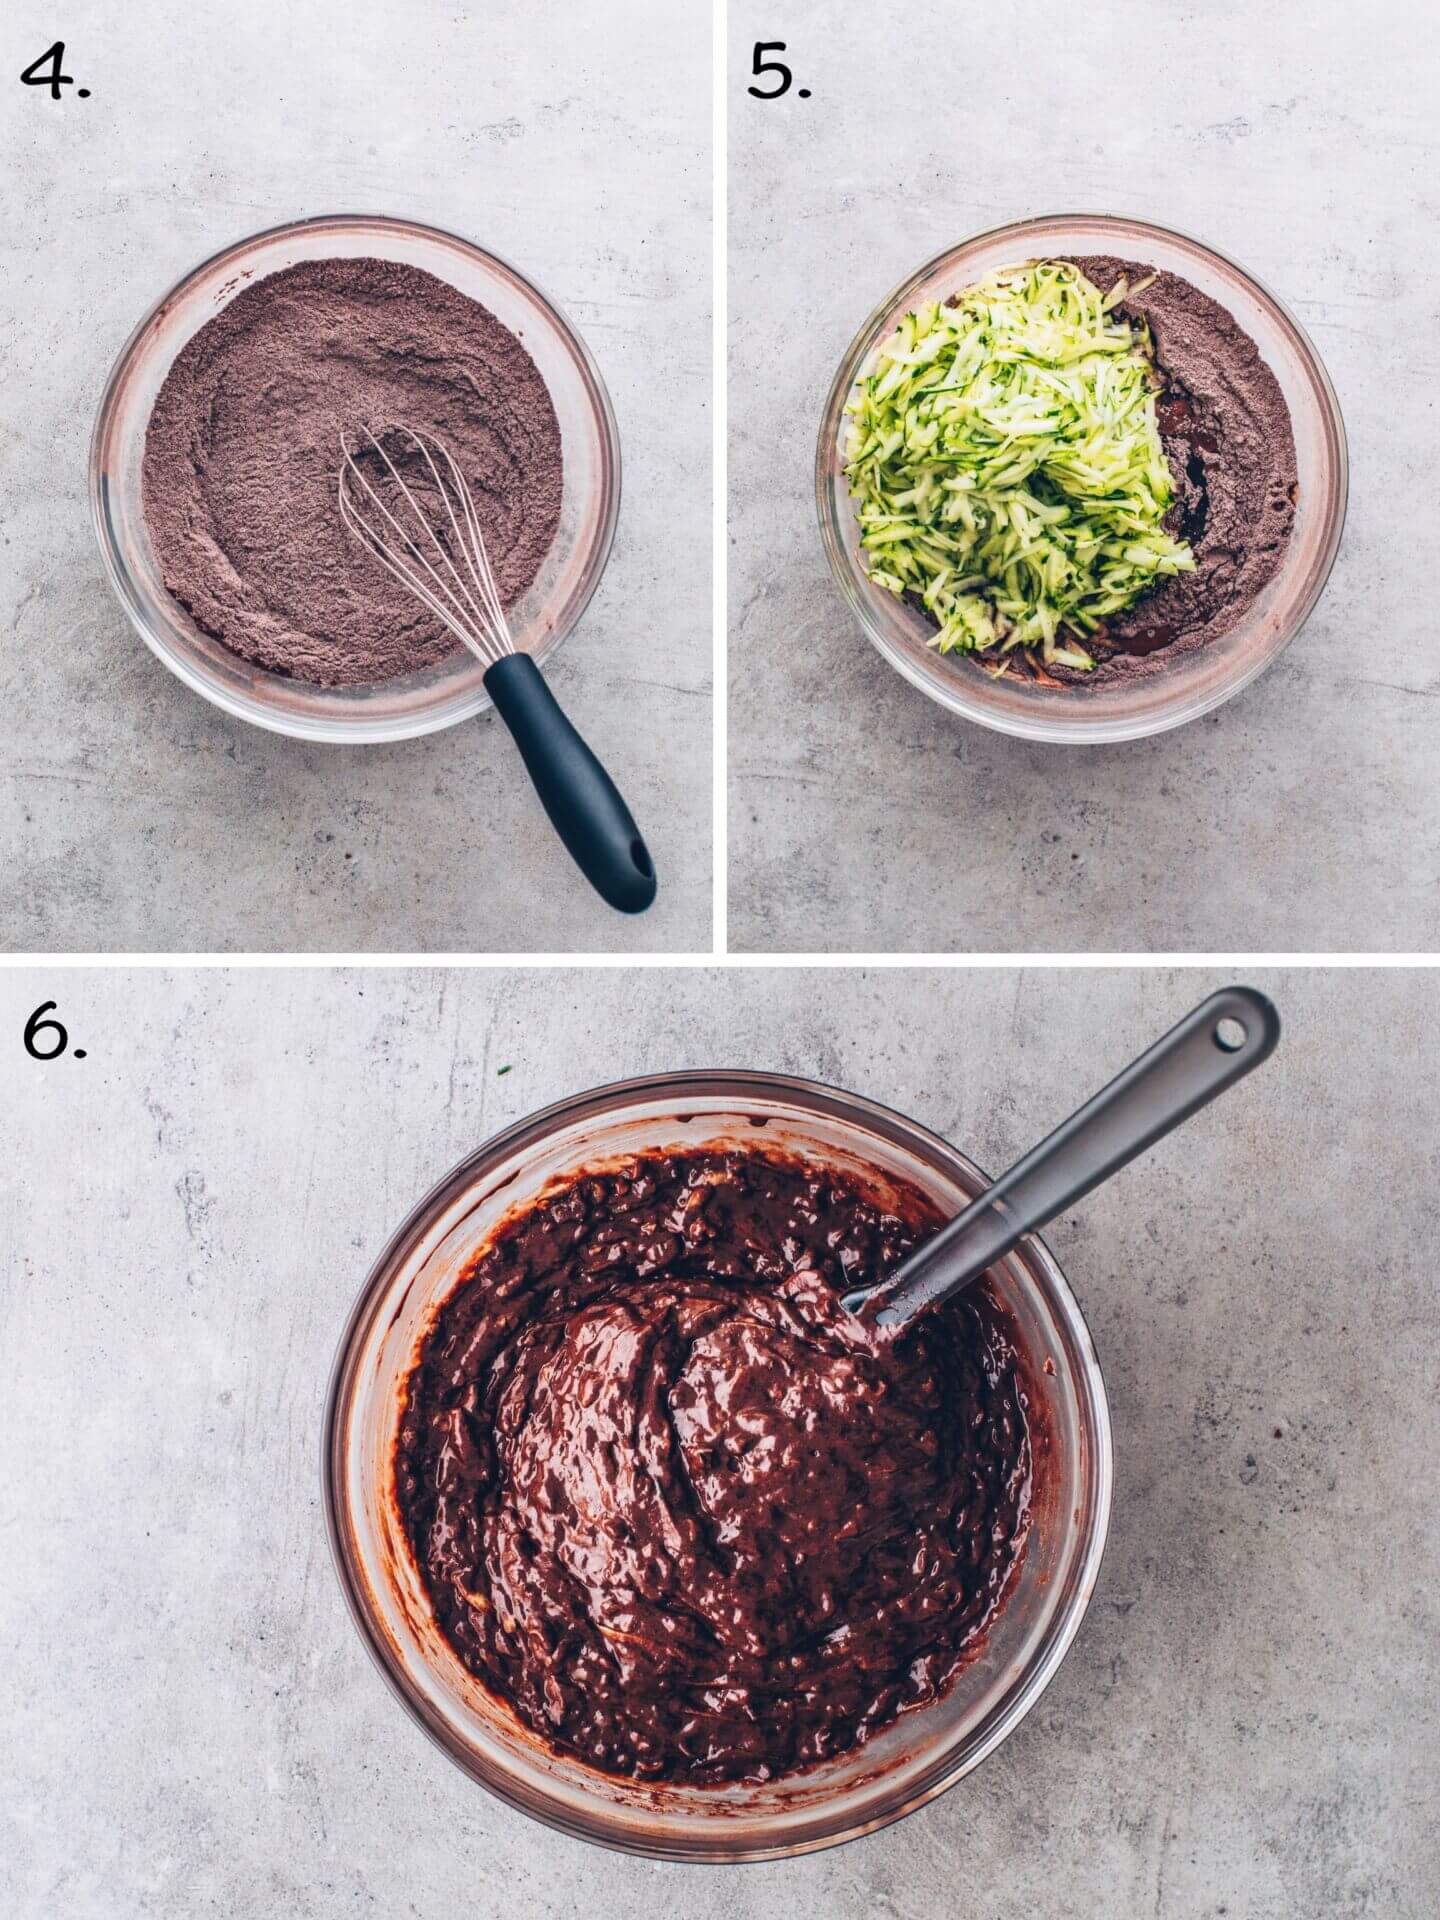 How to make Zucchini Chocolate Brownies step by step